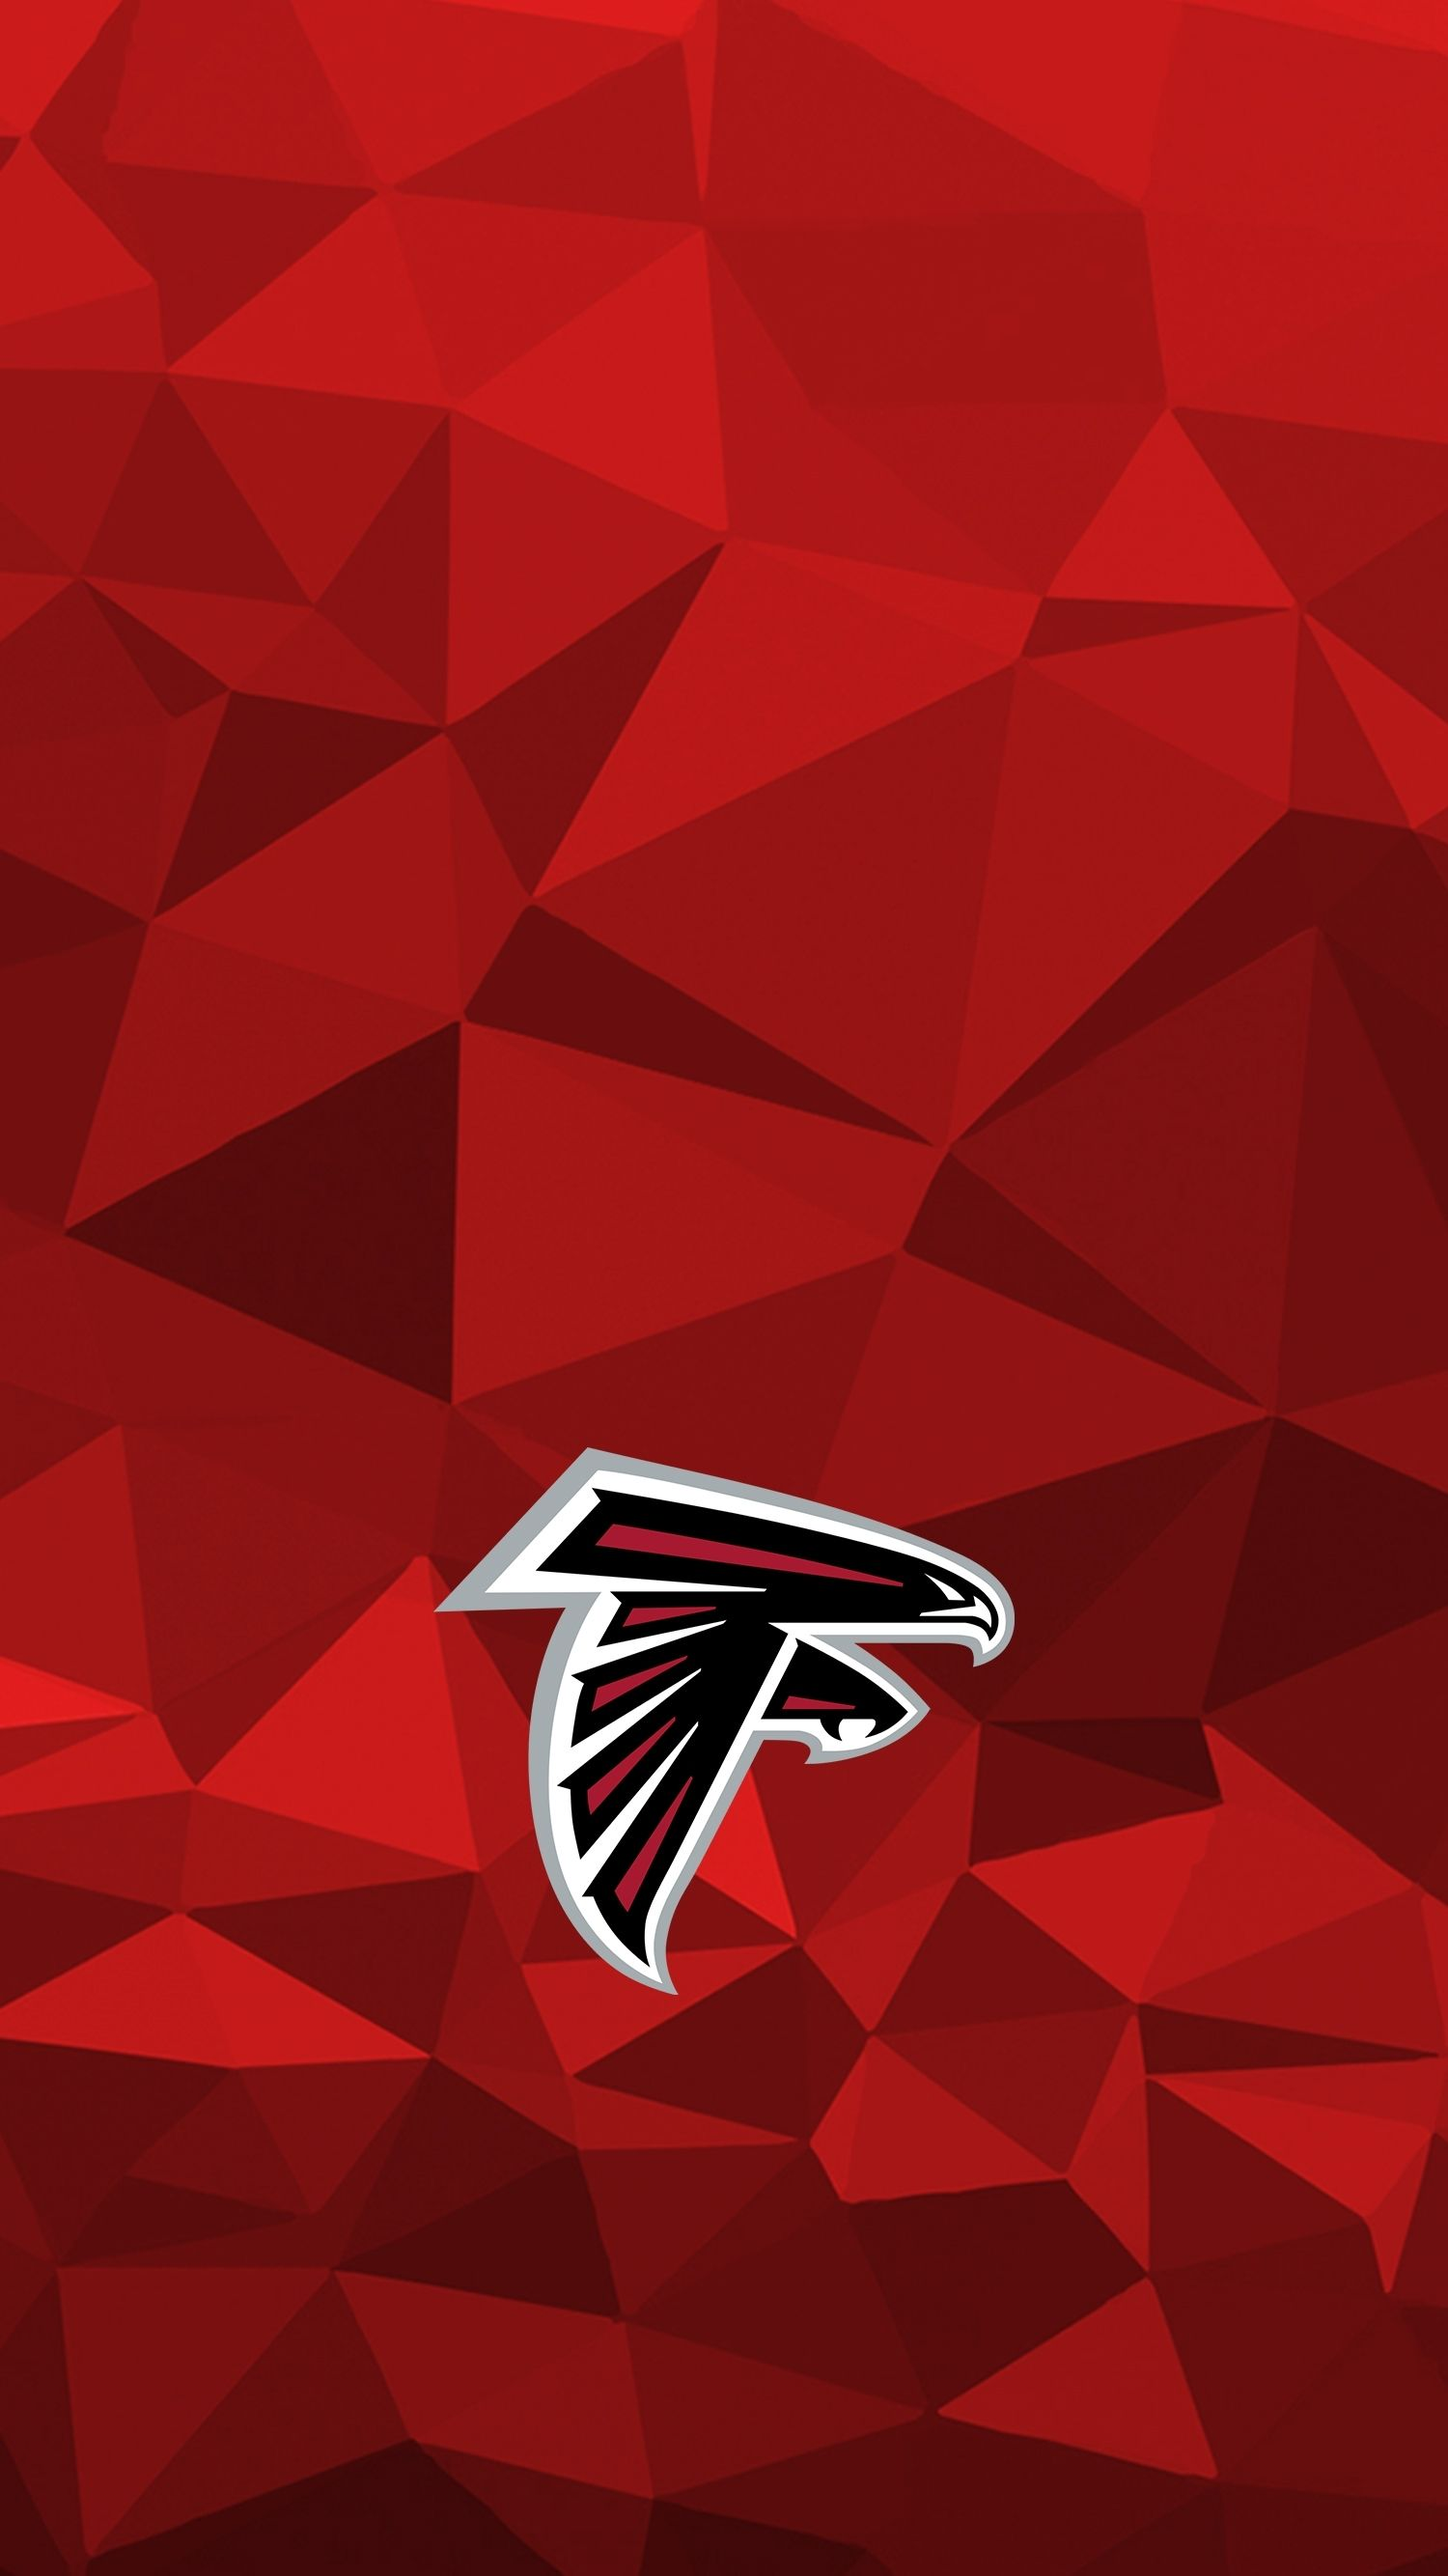 10 Latest Atlanta Falcons Wallpaper Iphone Full Hd 1080p For Pc Desktop Atlanta Falcons Wallpaper Atlanta Falcons Antonio Brown Wallpaper